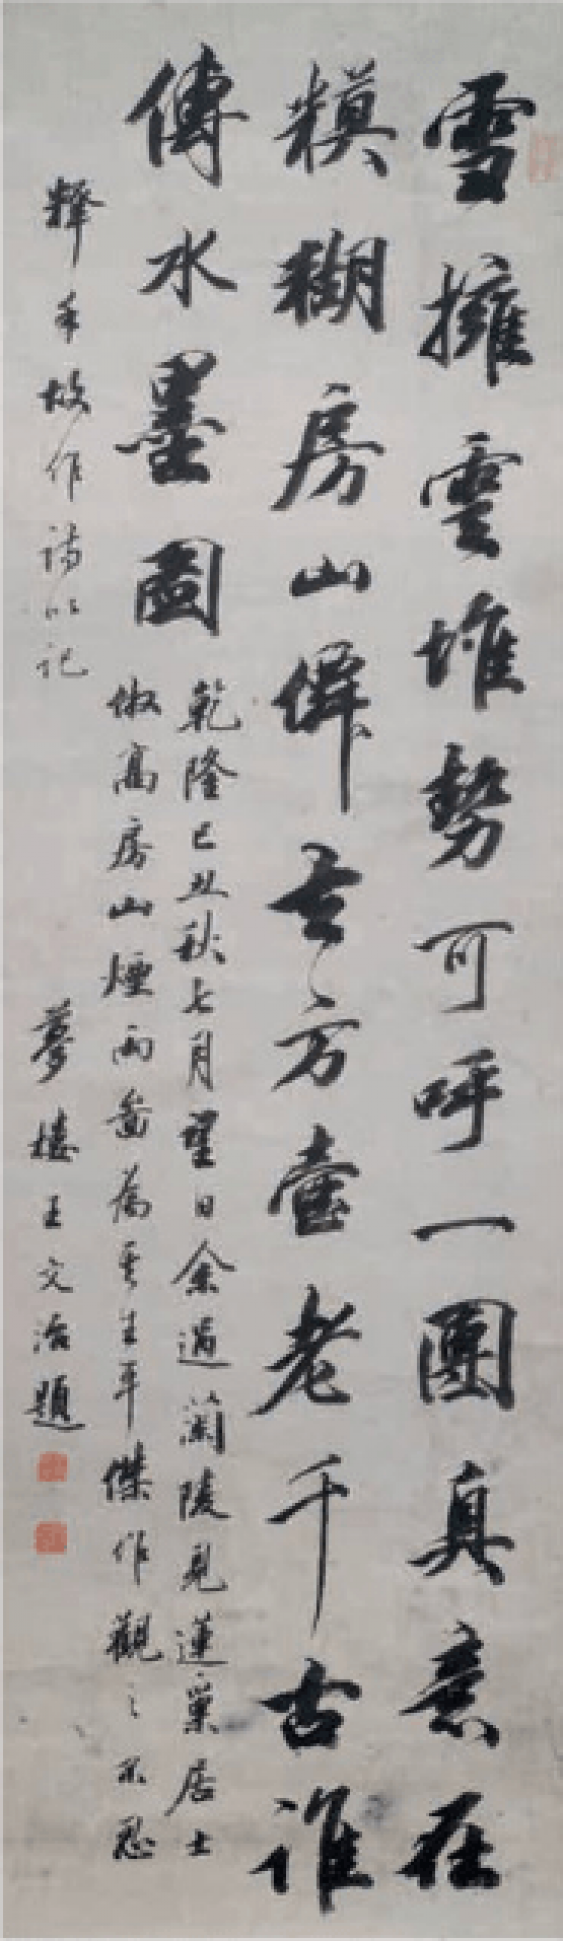 THE STYLE OF WANG WENZHI (1730-1802) - photo 1